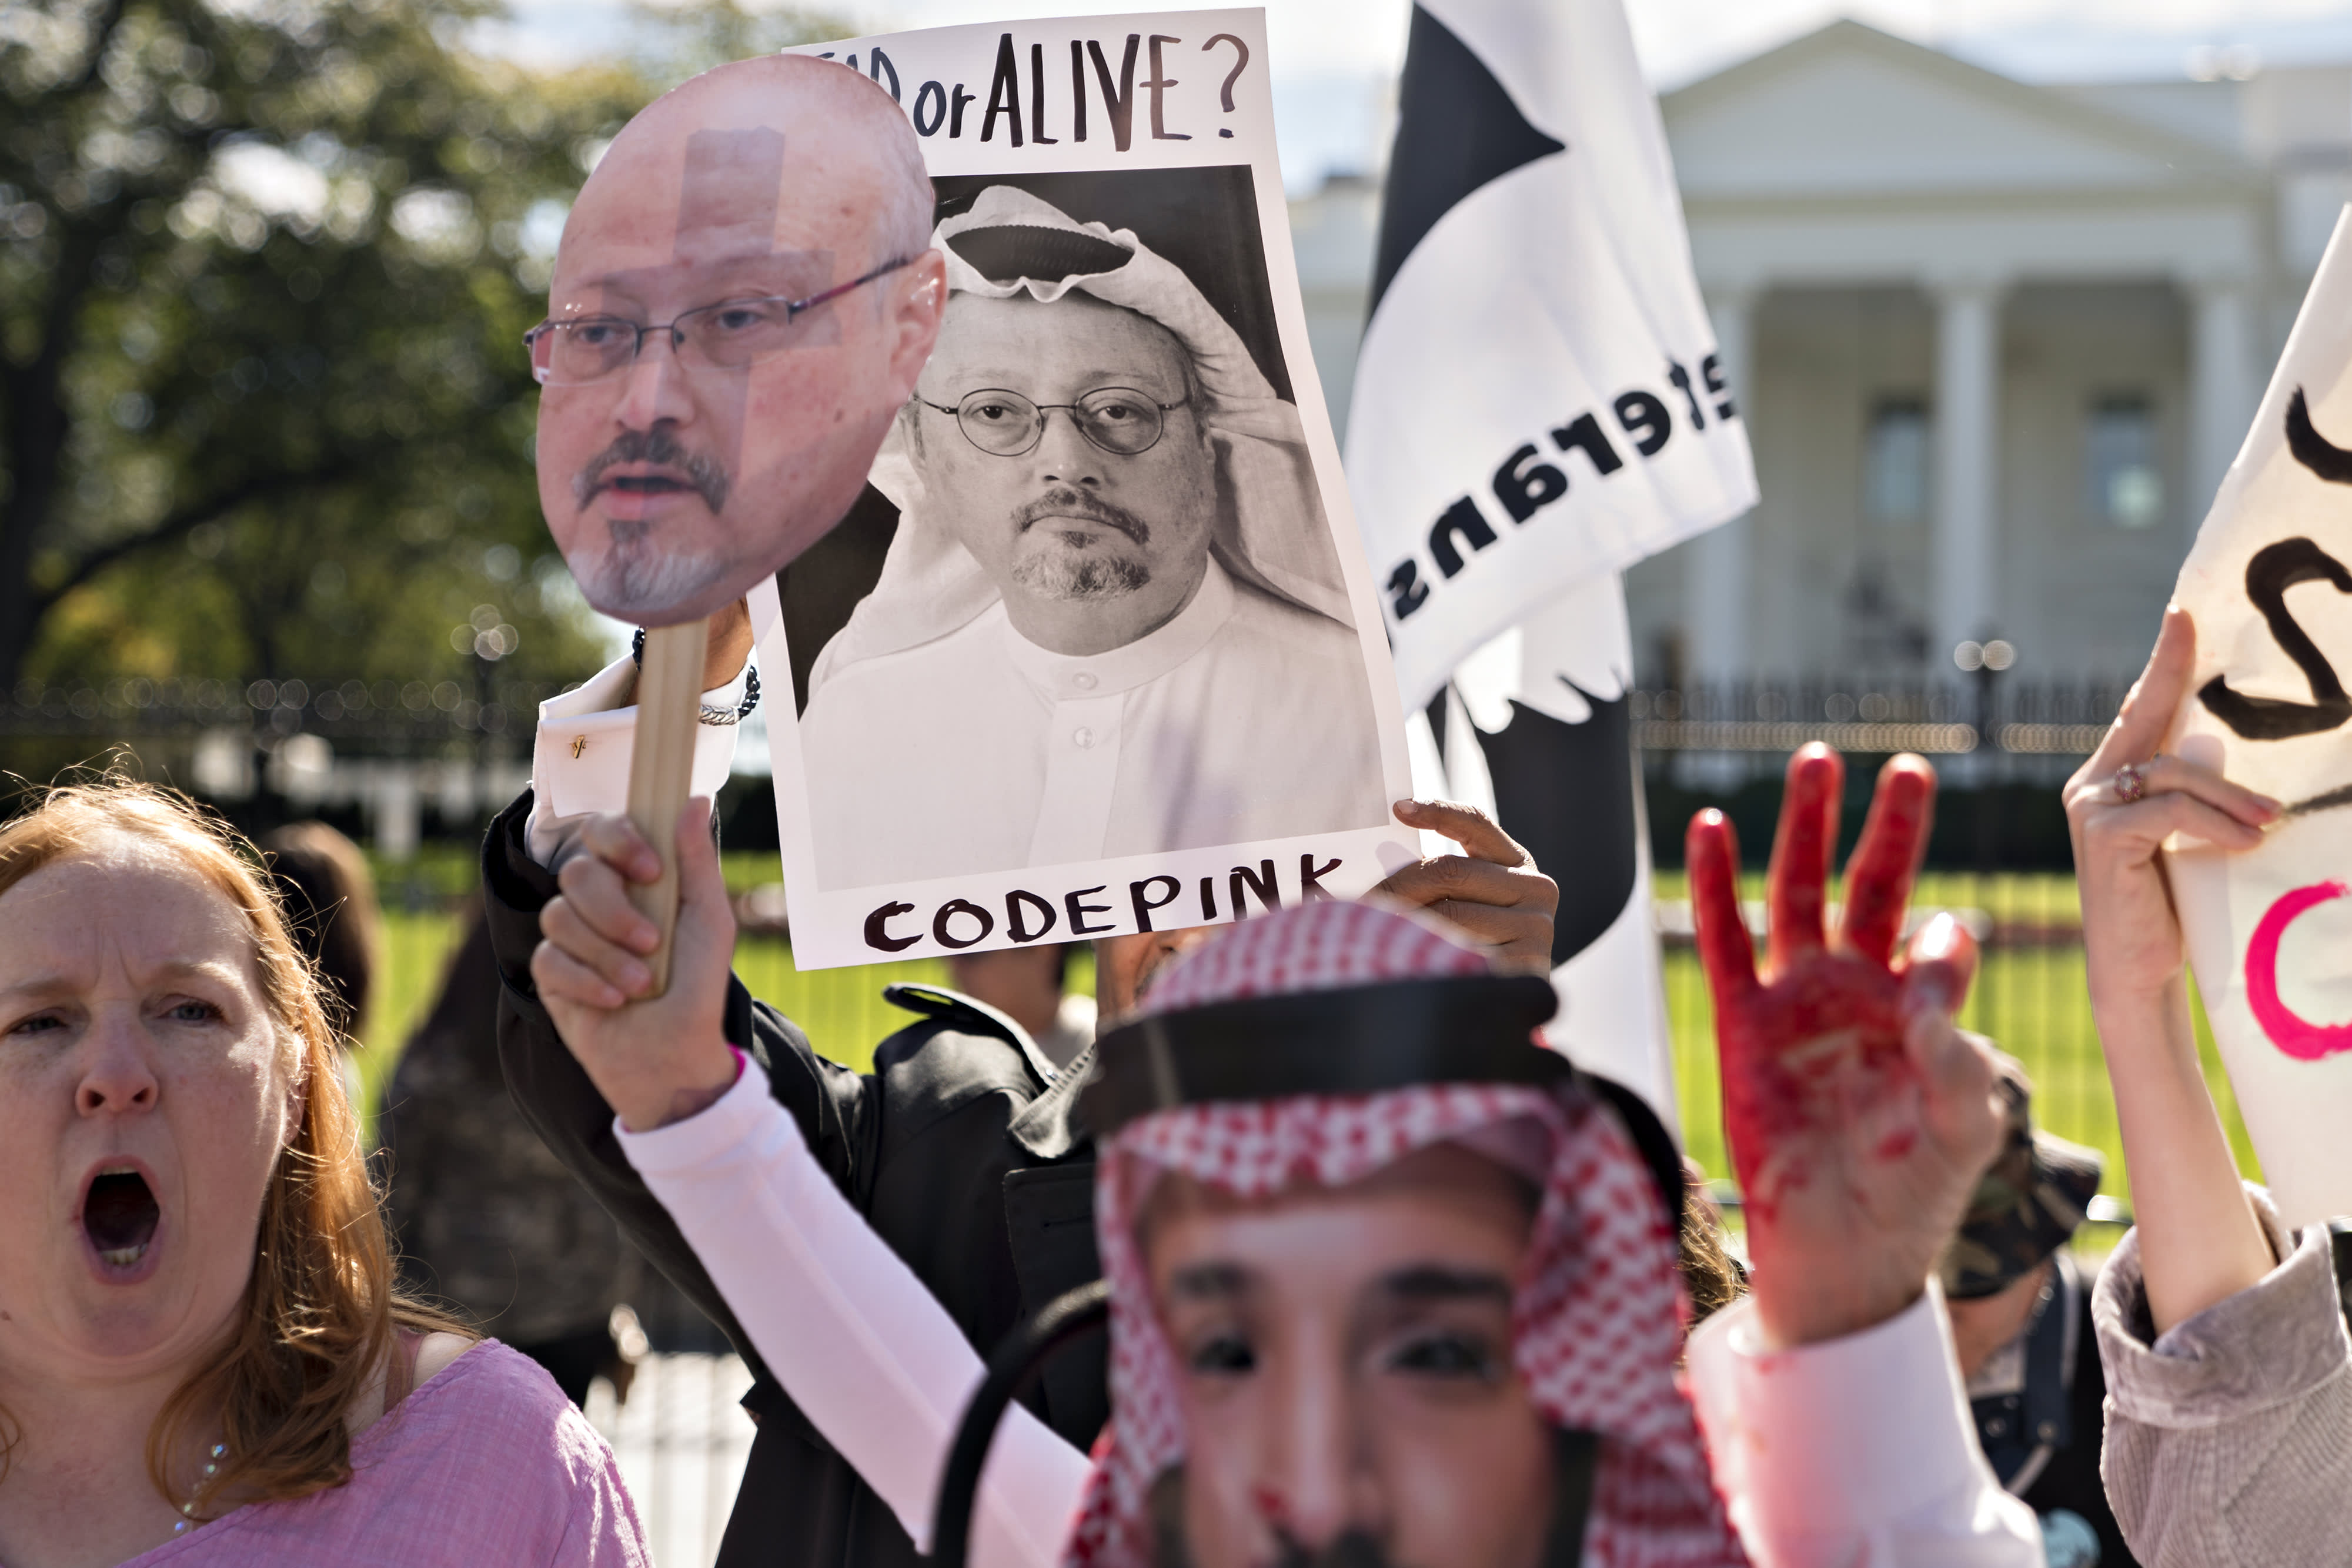 Trump administration approved nuclear energy transfers to Saudis after Khashoggi killing